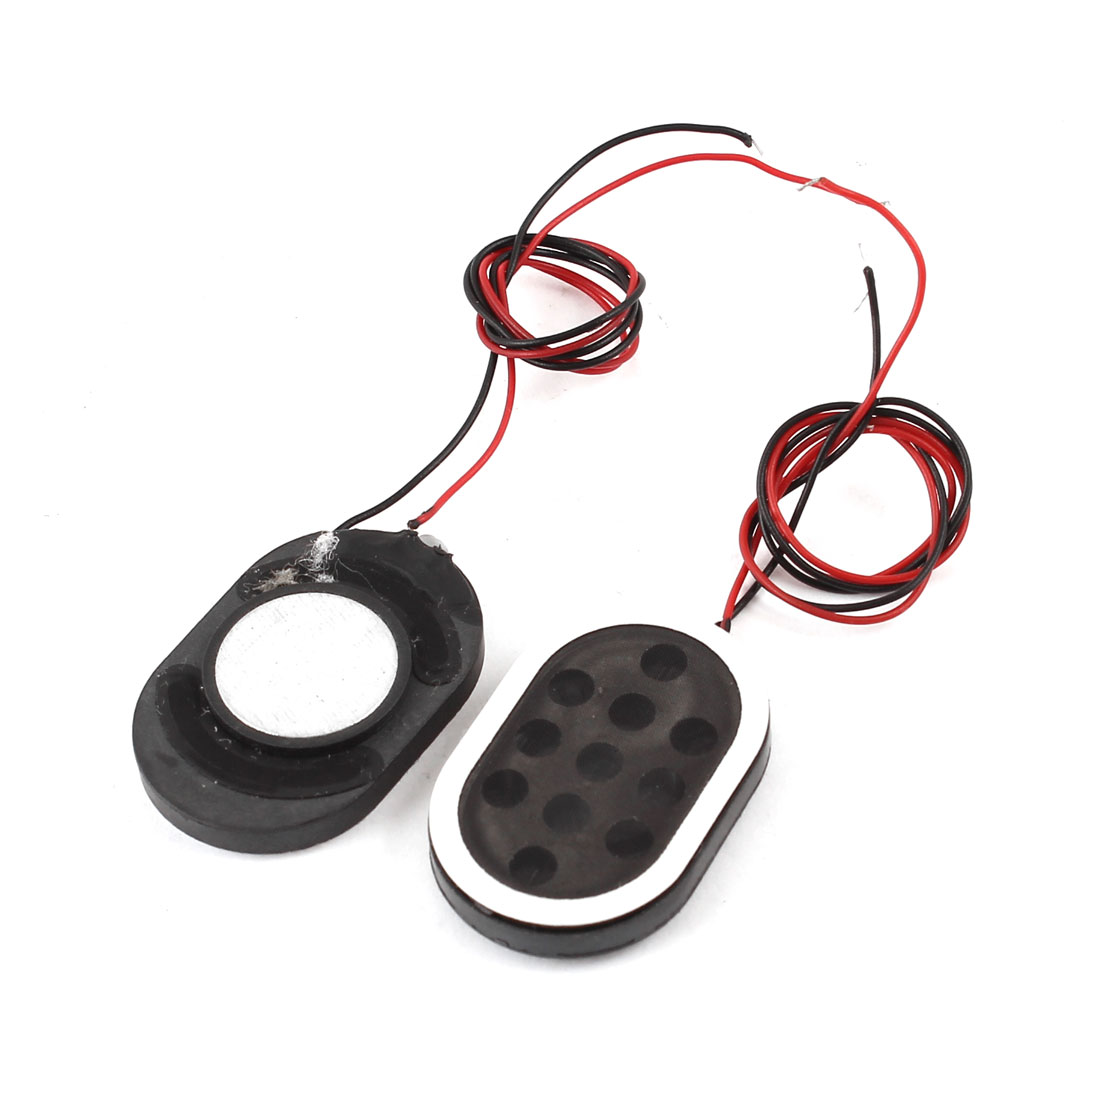 2 Pcs 1.5W 8 Ohm 20x30mm Magnet Amplifier Speaker Loudspeaker Horn for Vido N90 Tablet